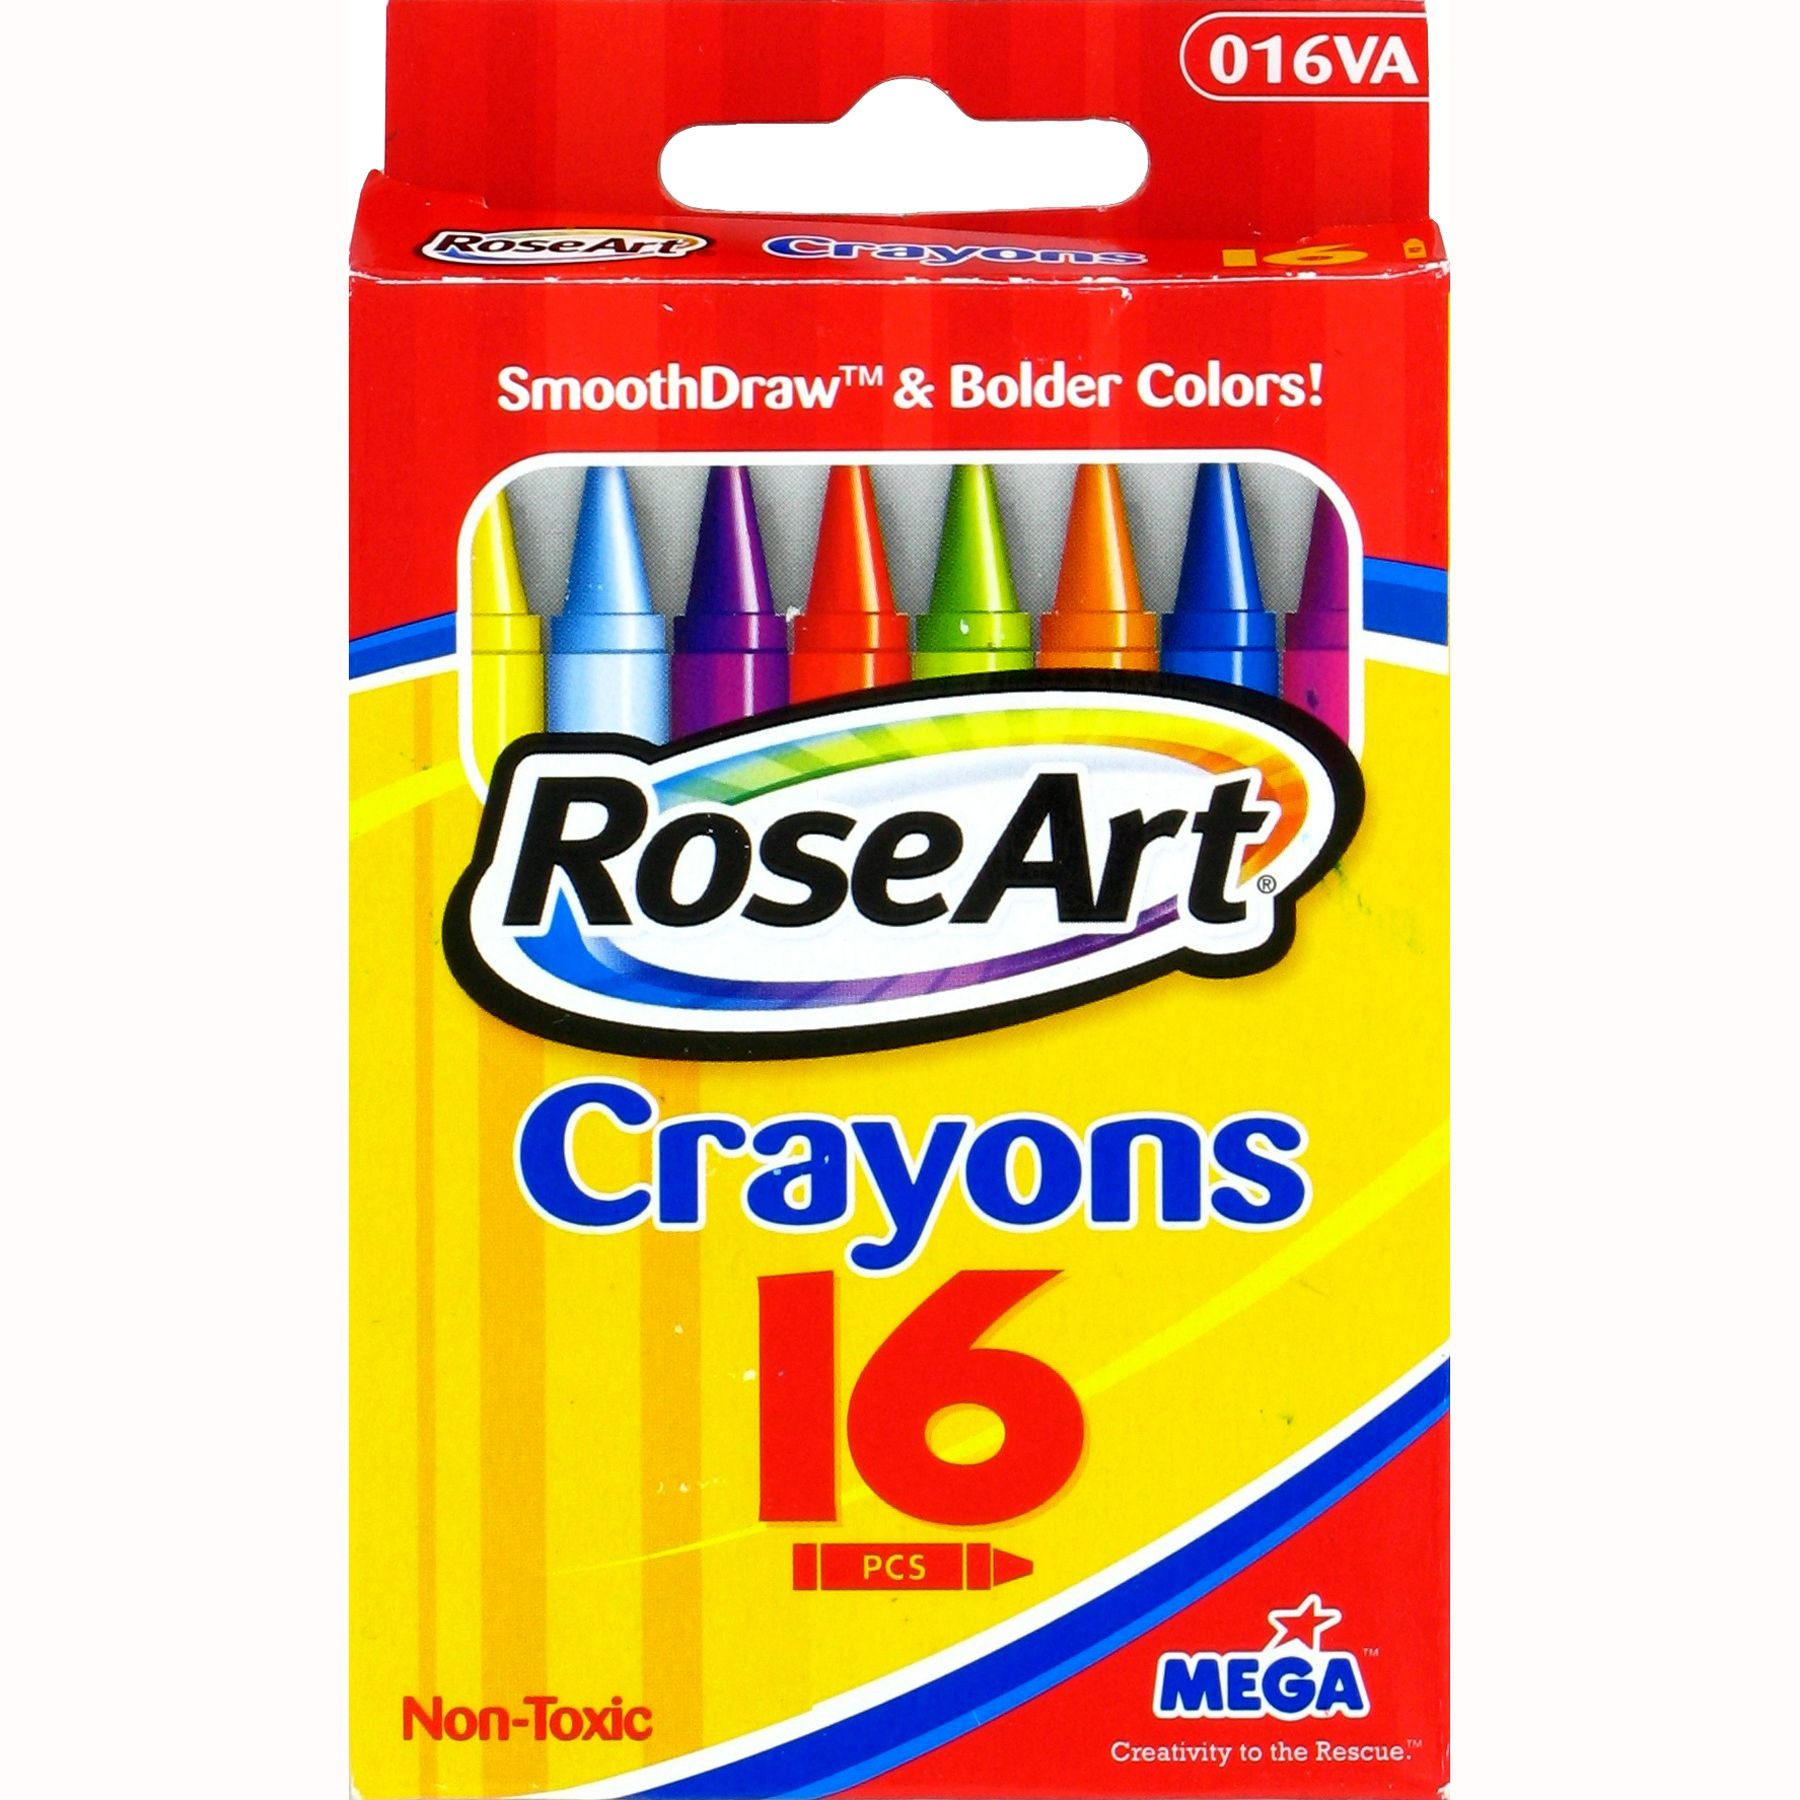 RoseArt 16-Count Crayons CYV72 Packaging May Vary